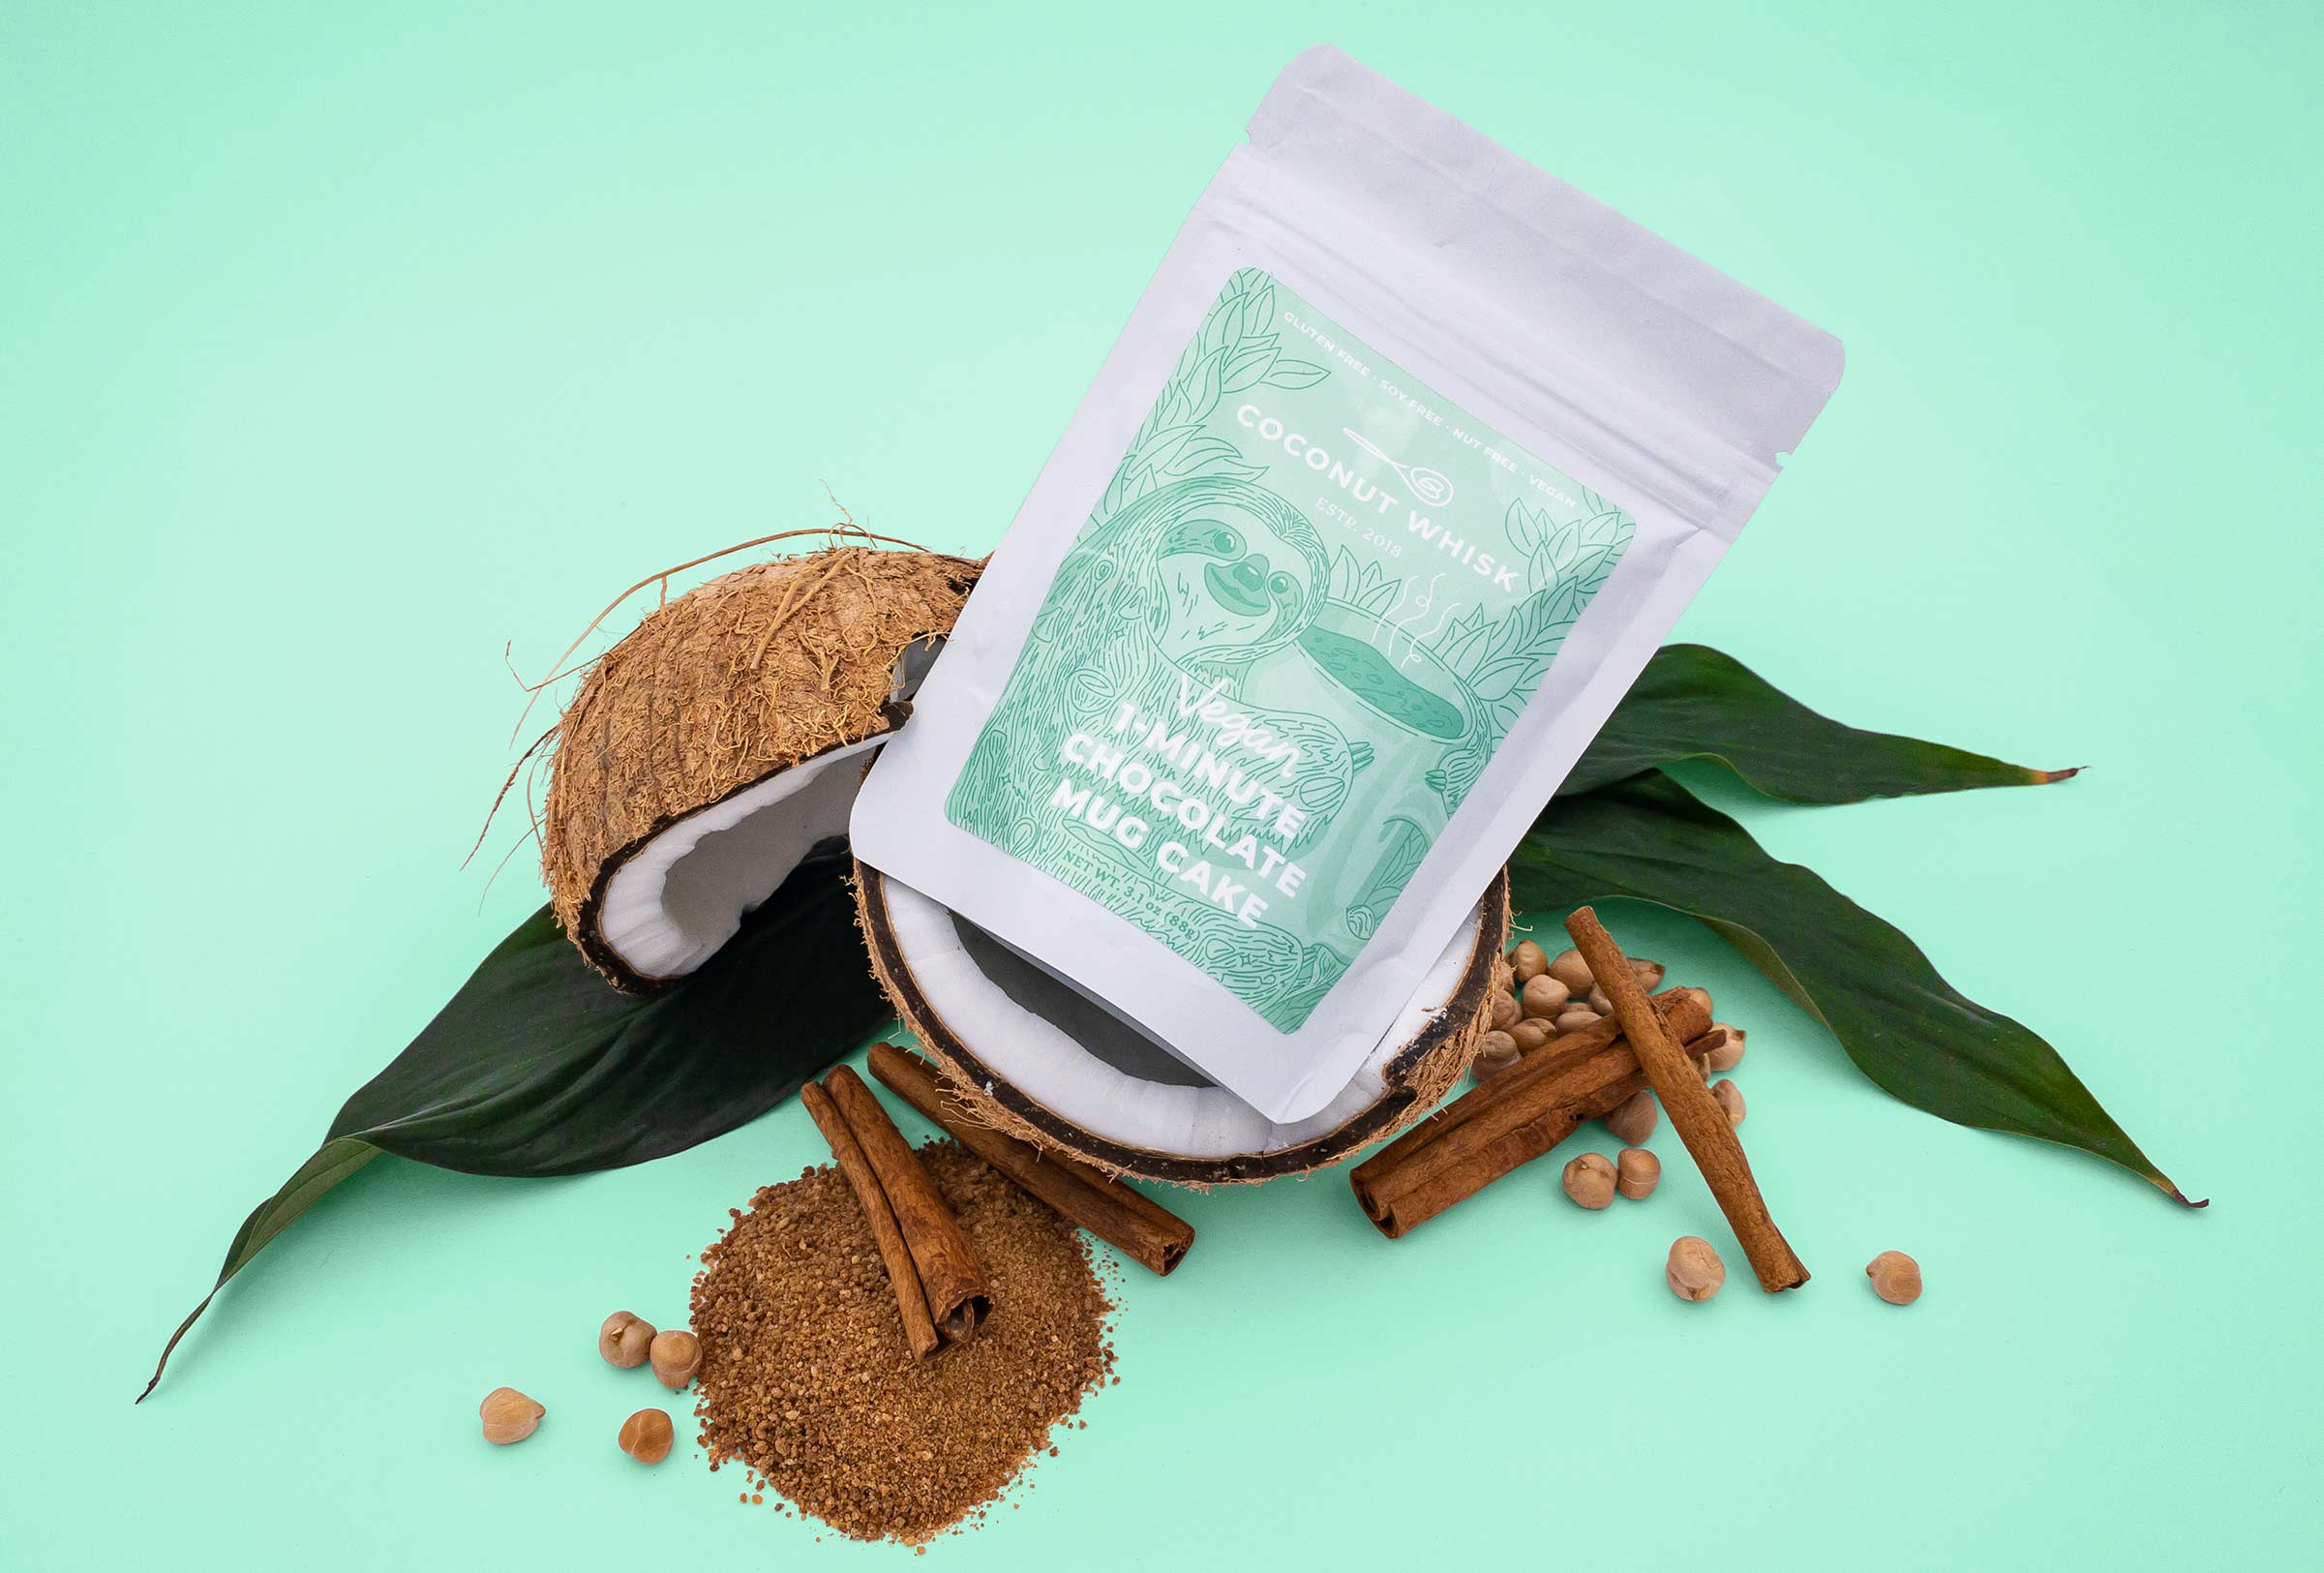 coconut whisk mug cake packaging design